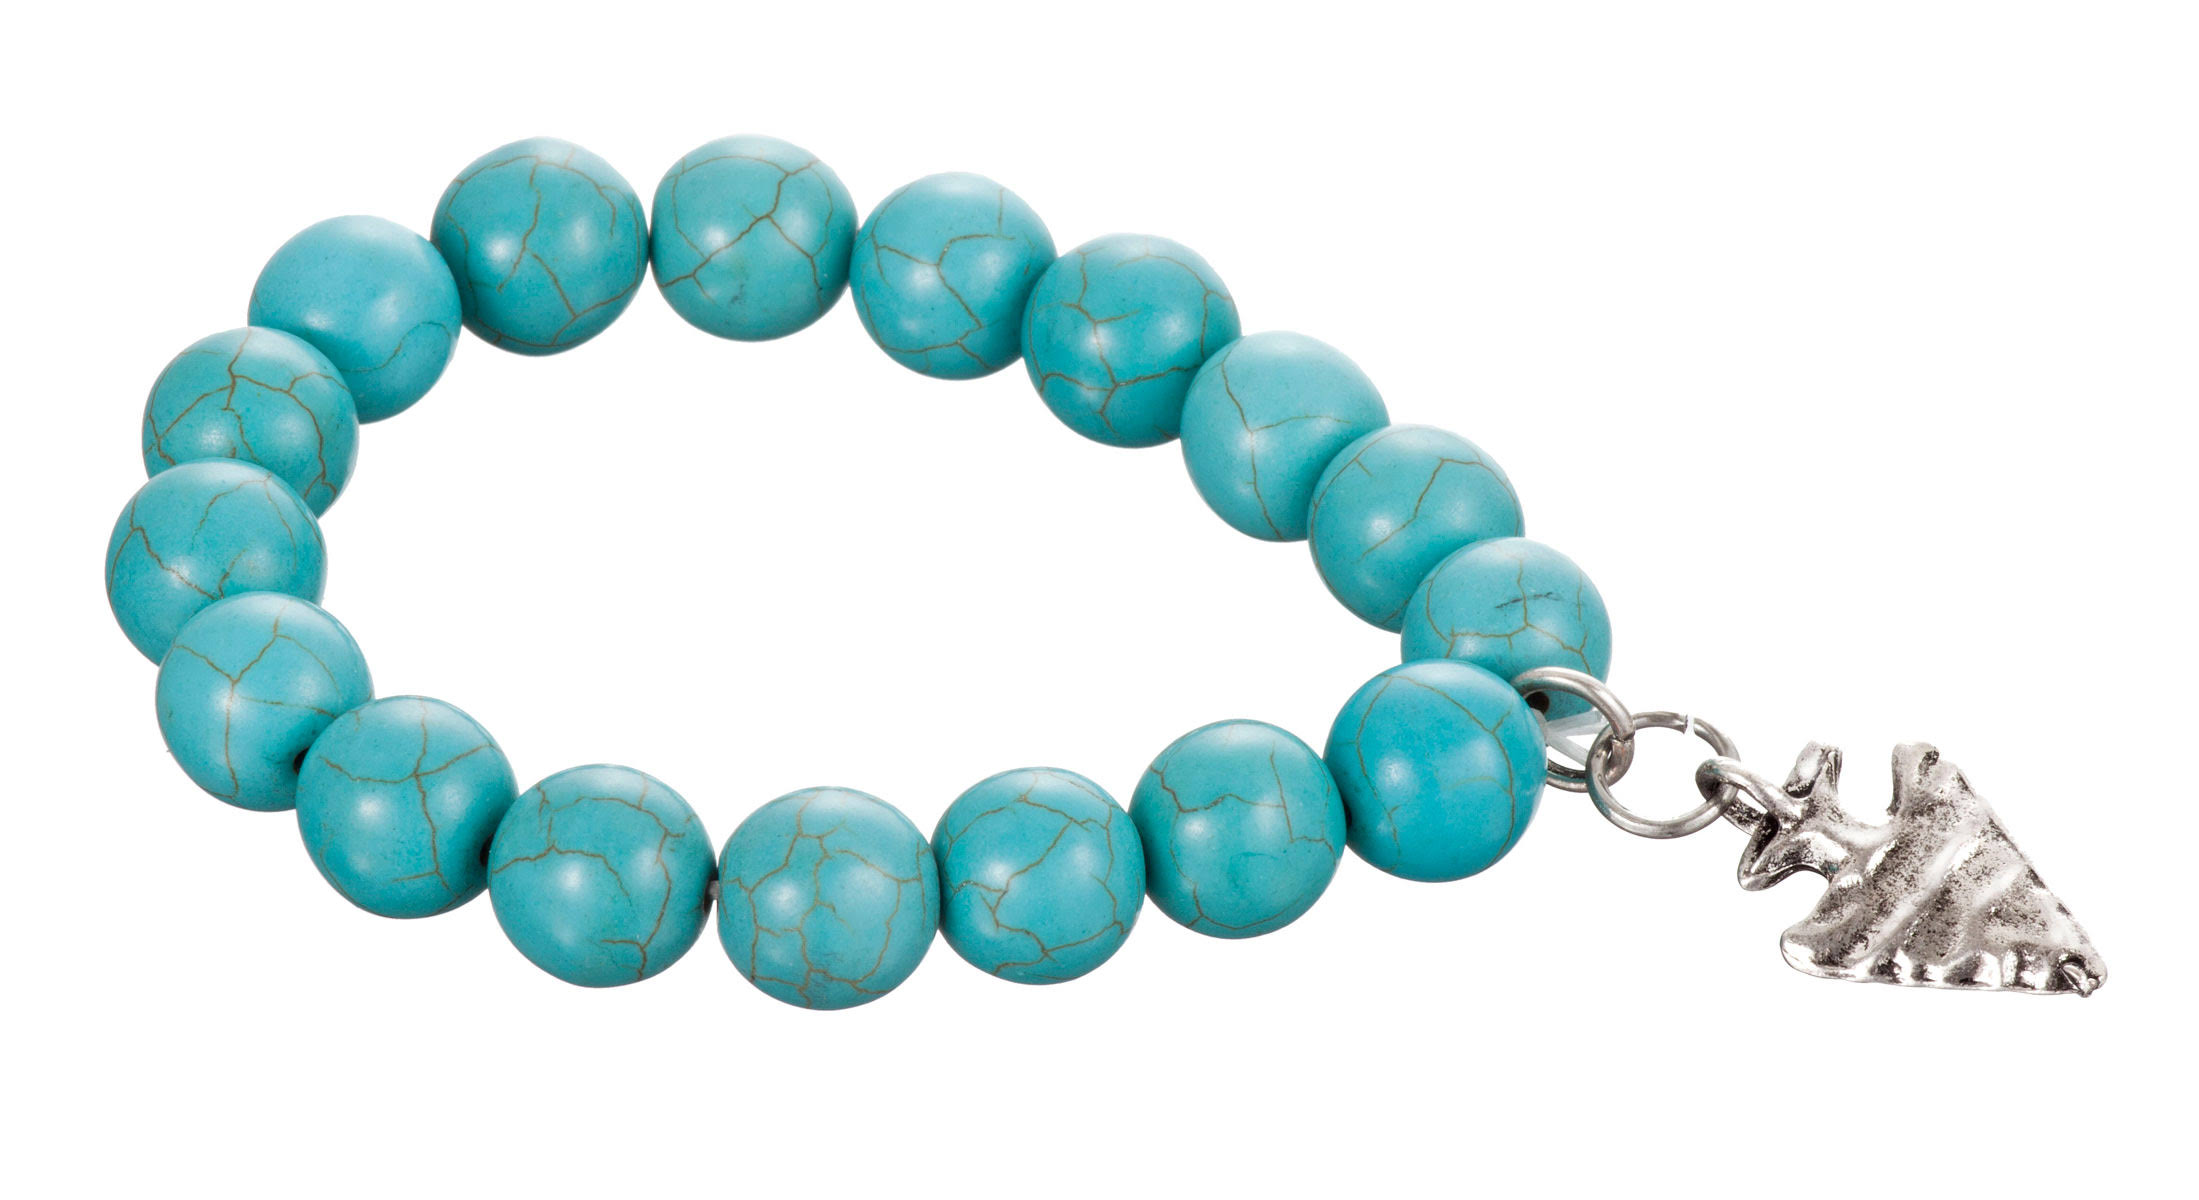 West and Co. Round Faux Turquoise Beaded Stretch Bracelet, Silver